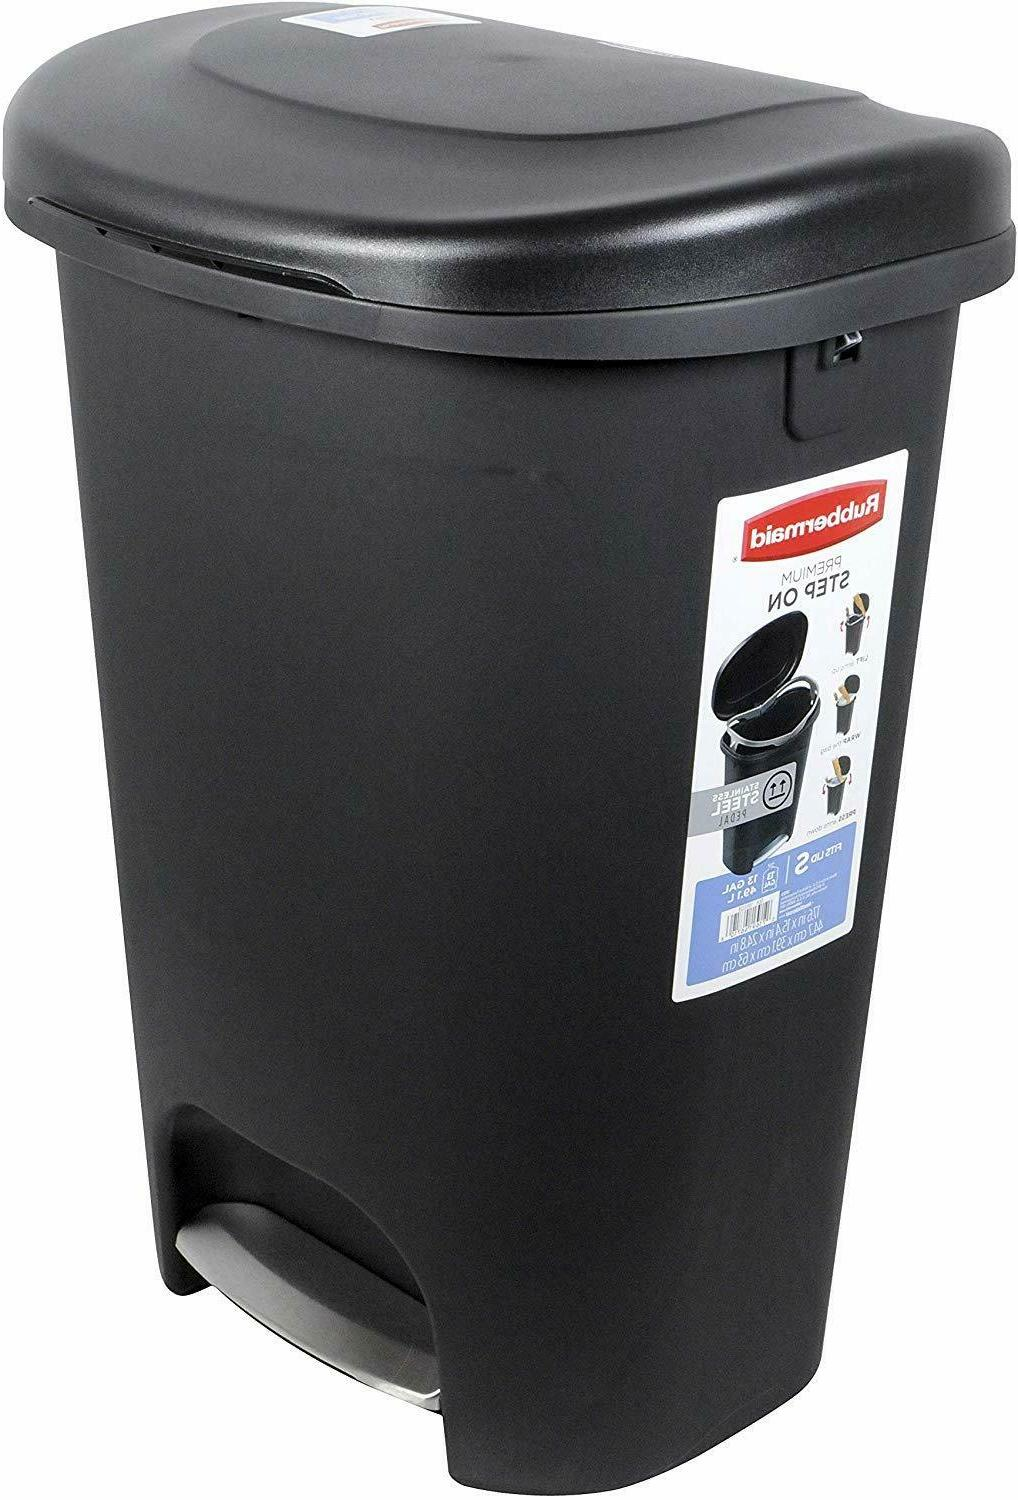 step on lid trash can for home